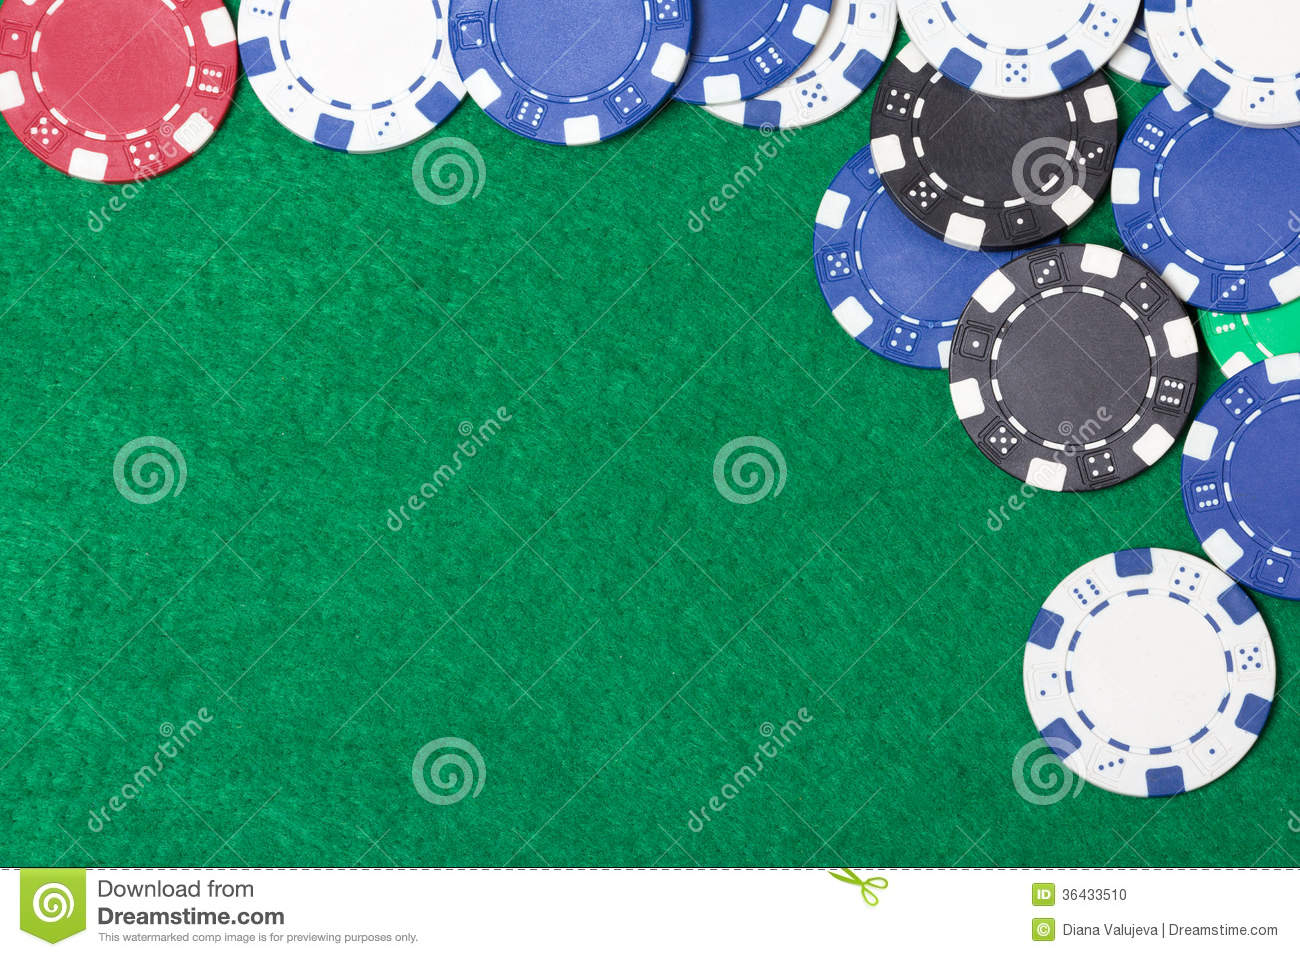 Poker table background - Background Casino Chips Green Poker Table